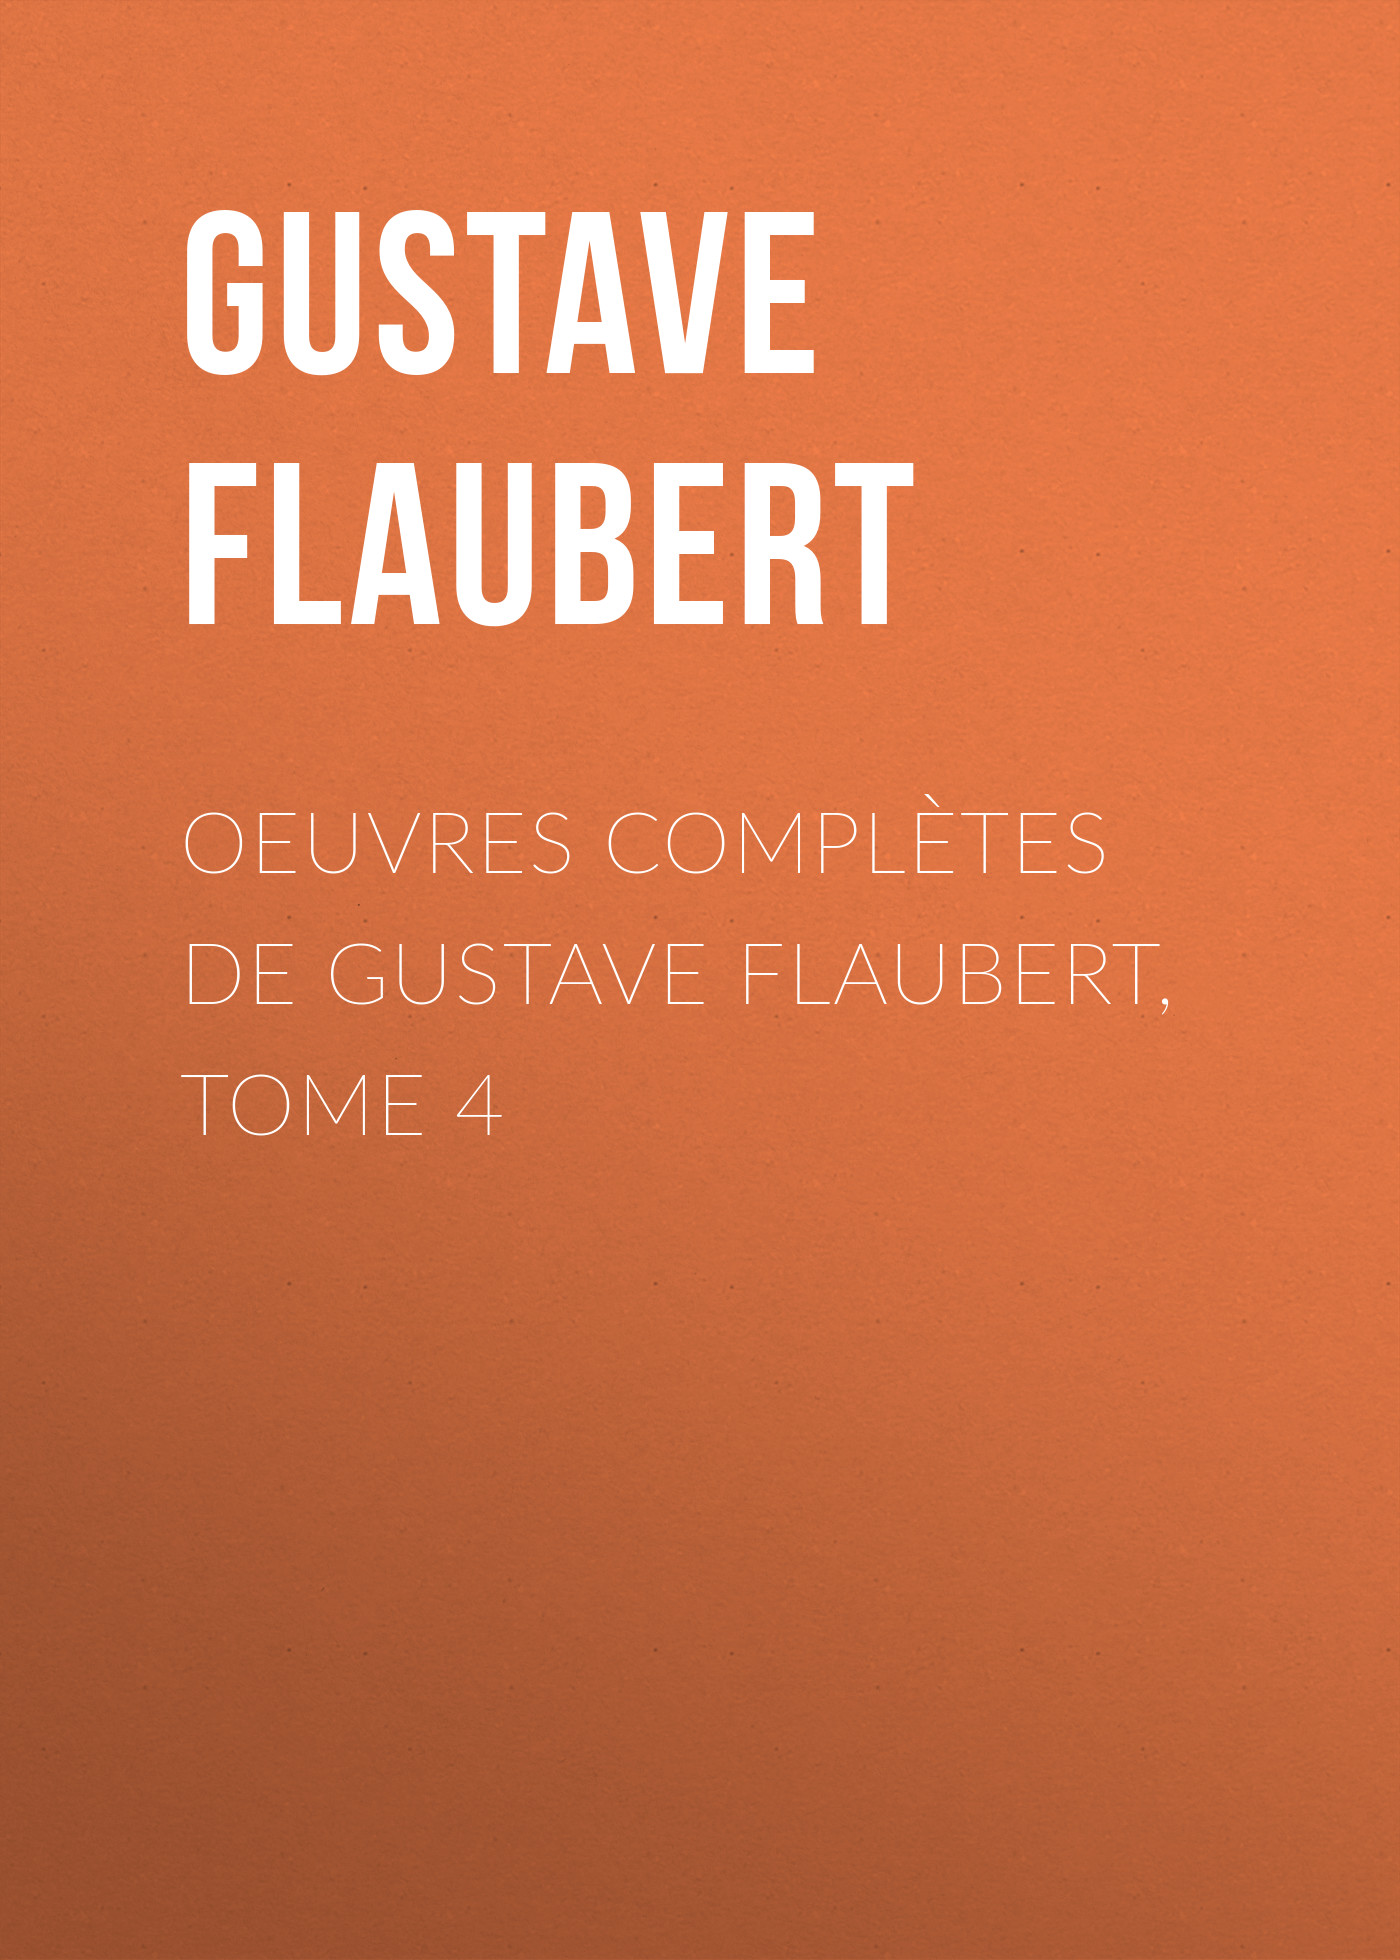 Gustave Flaubert OEuvres complètes de Gustave Flaubert, tome 4 flaubert gustave the complete works of gustave flaubert embracing romances travels comedies sketches and correspondence volume 10